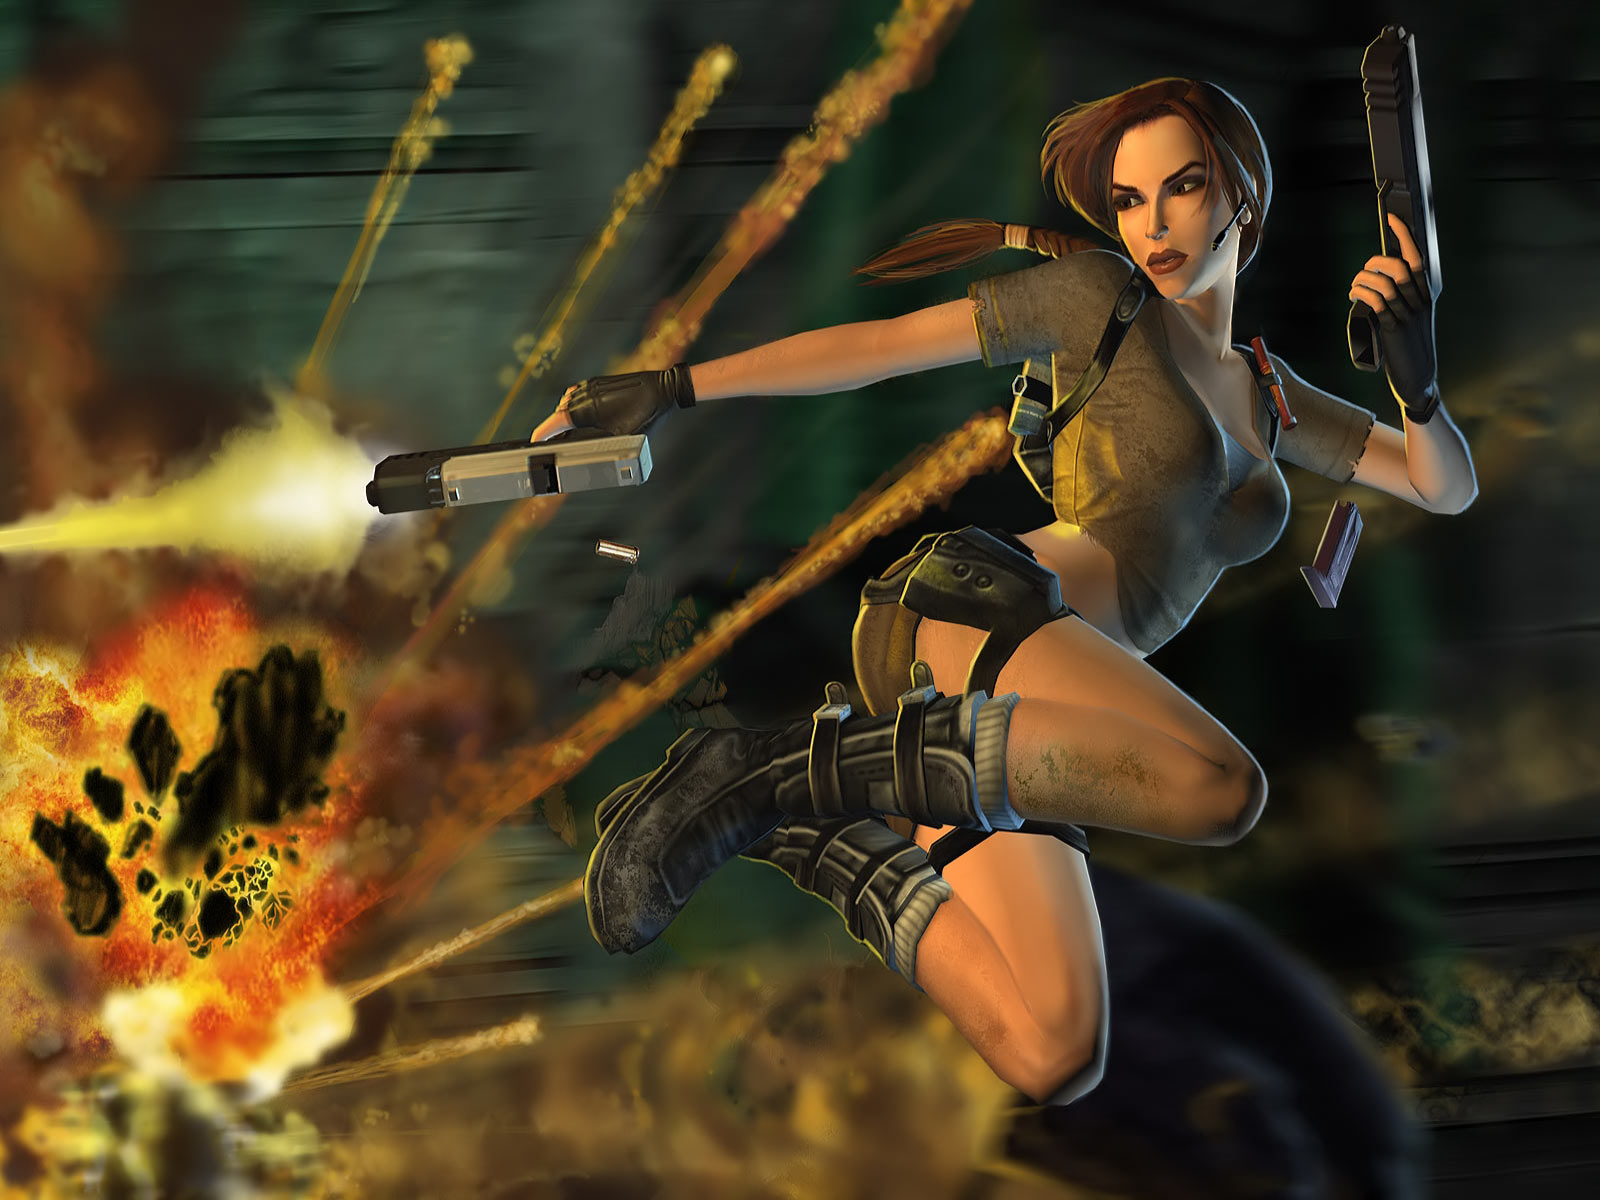 Lara Croft Tomb Raider Game Wallpaper 1600x1200 9415